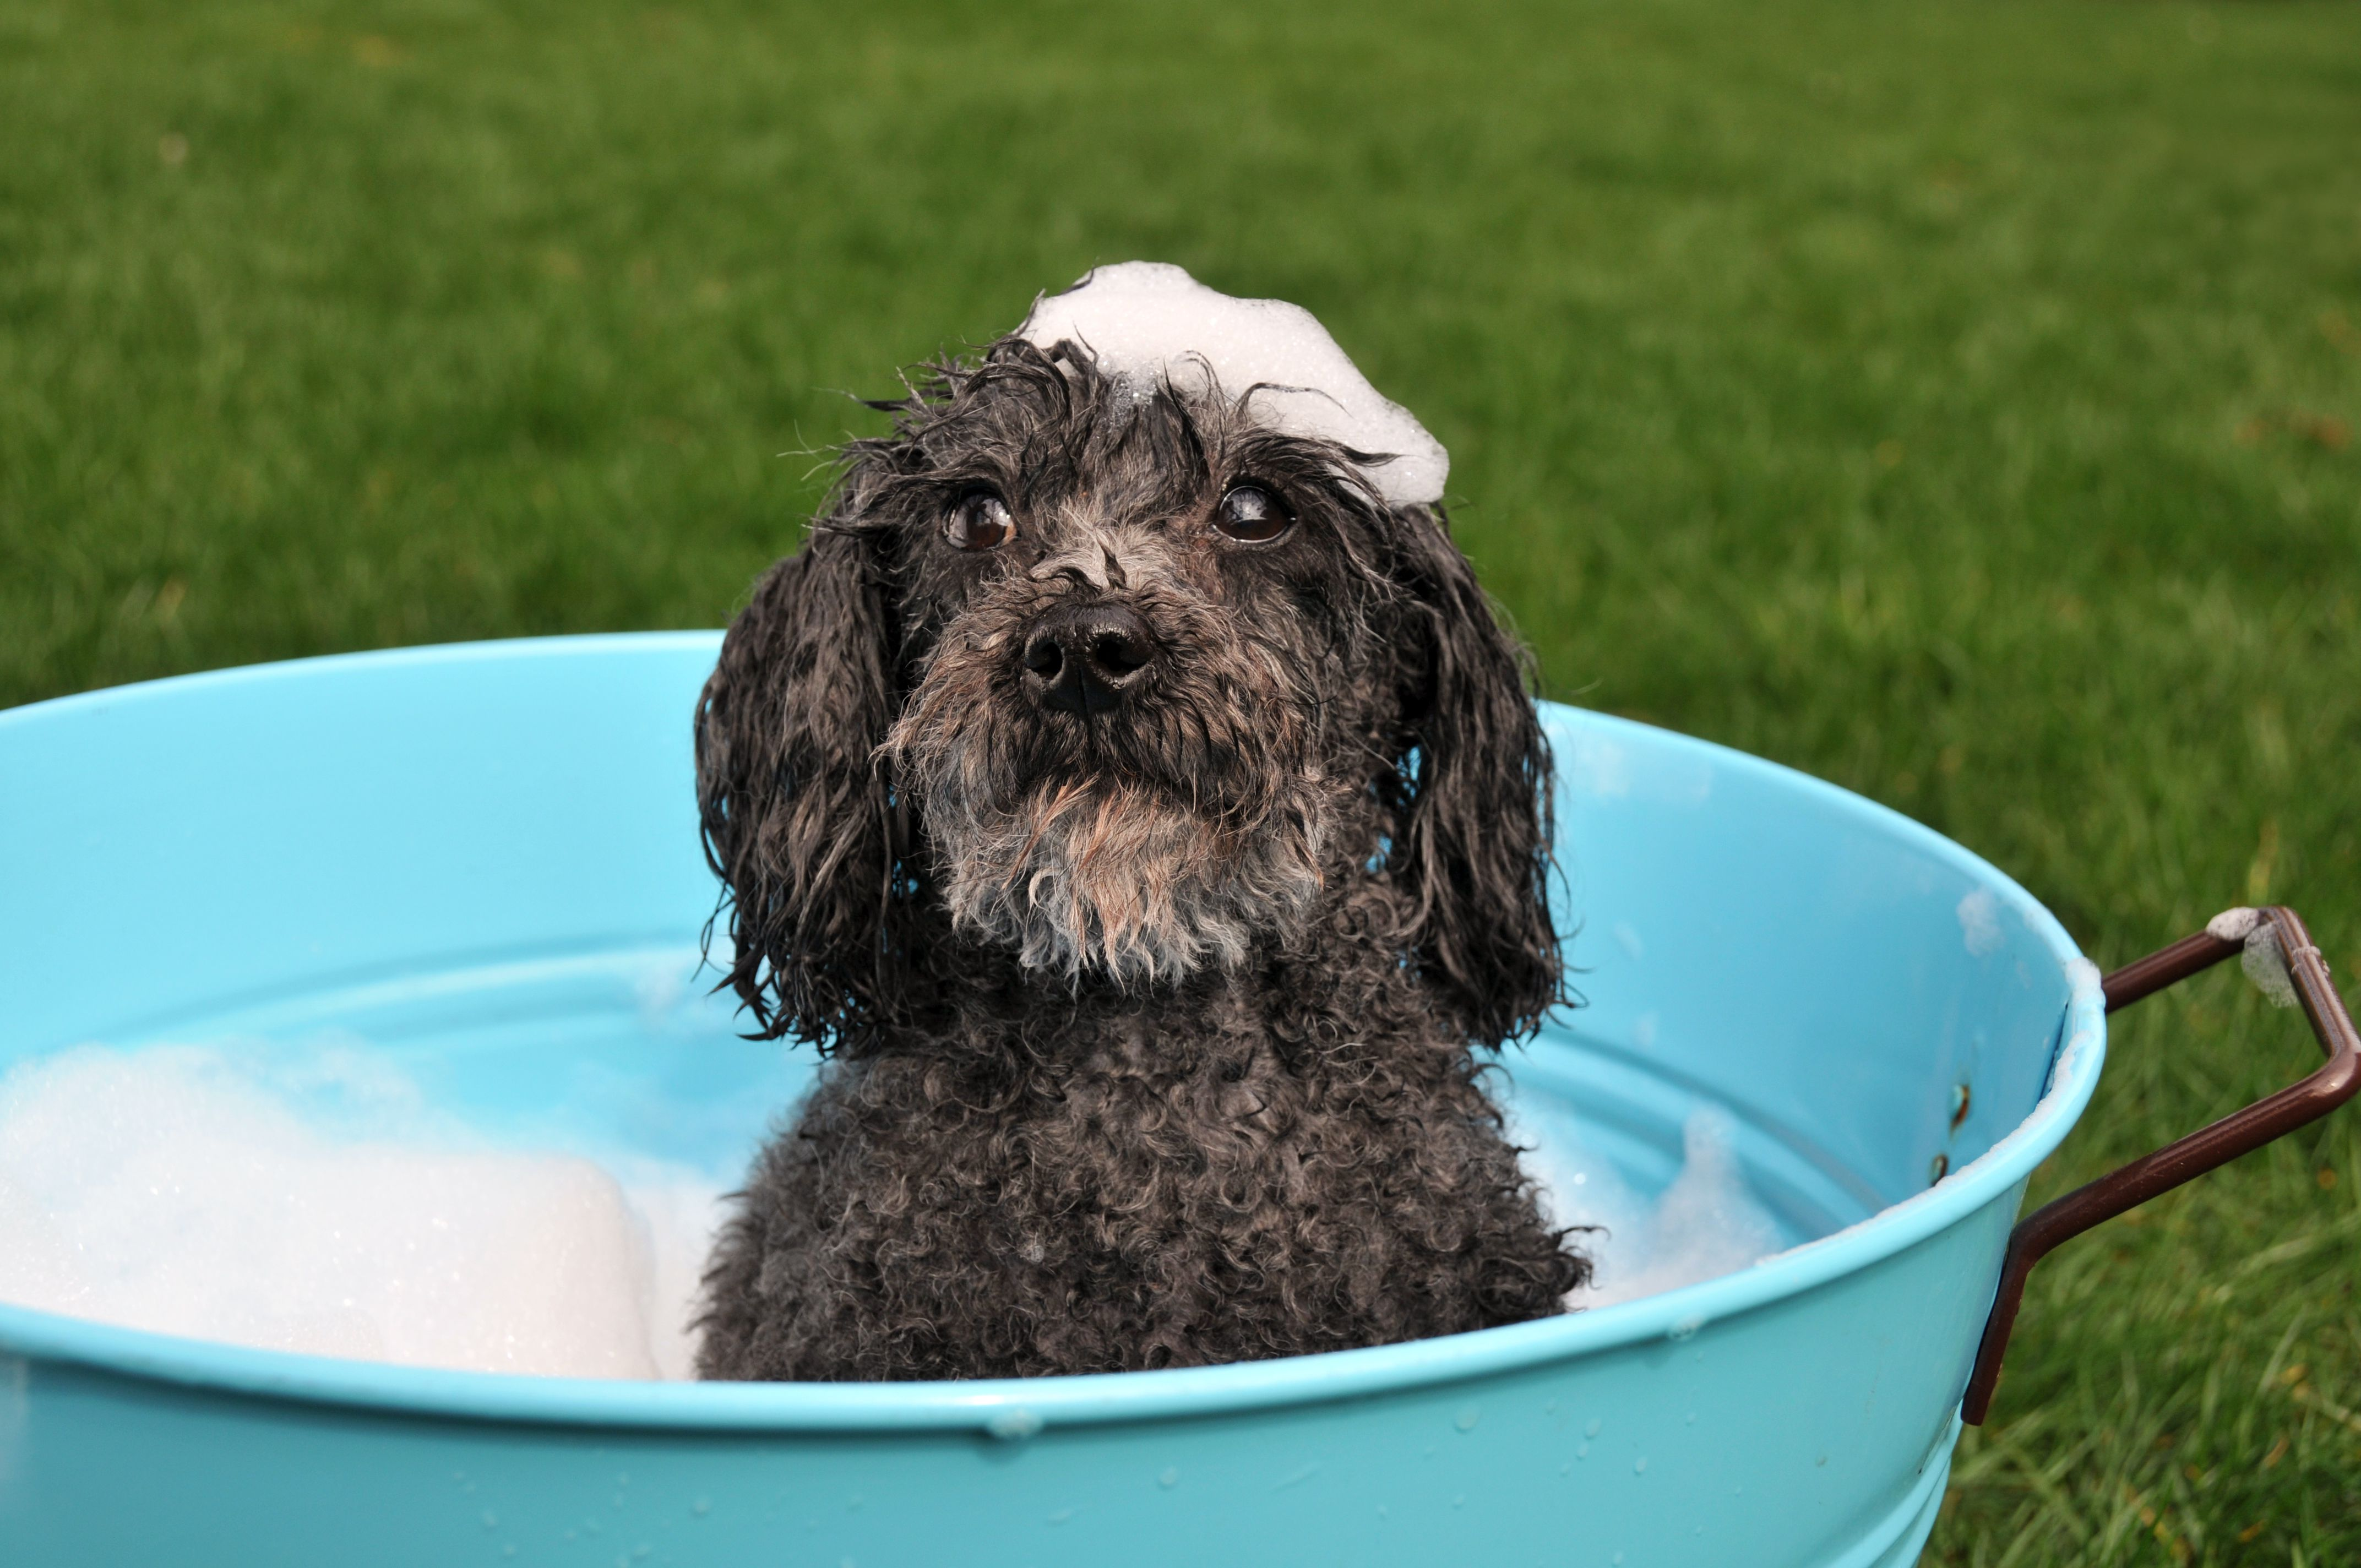 What Age Can You Bathe A Dog At?